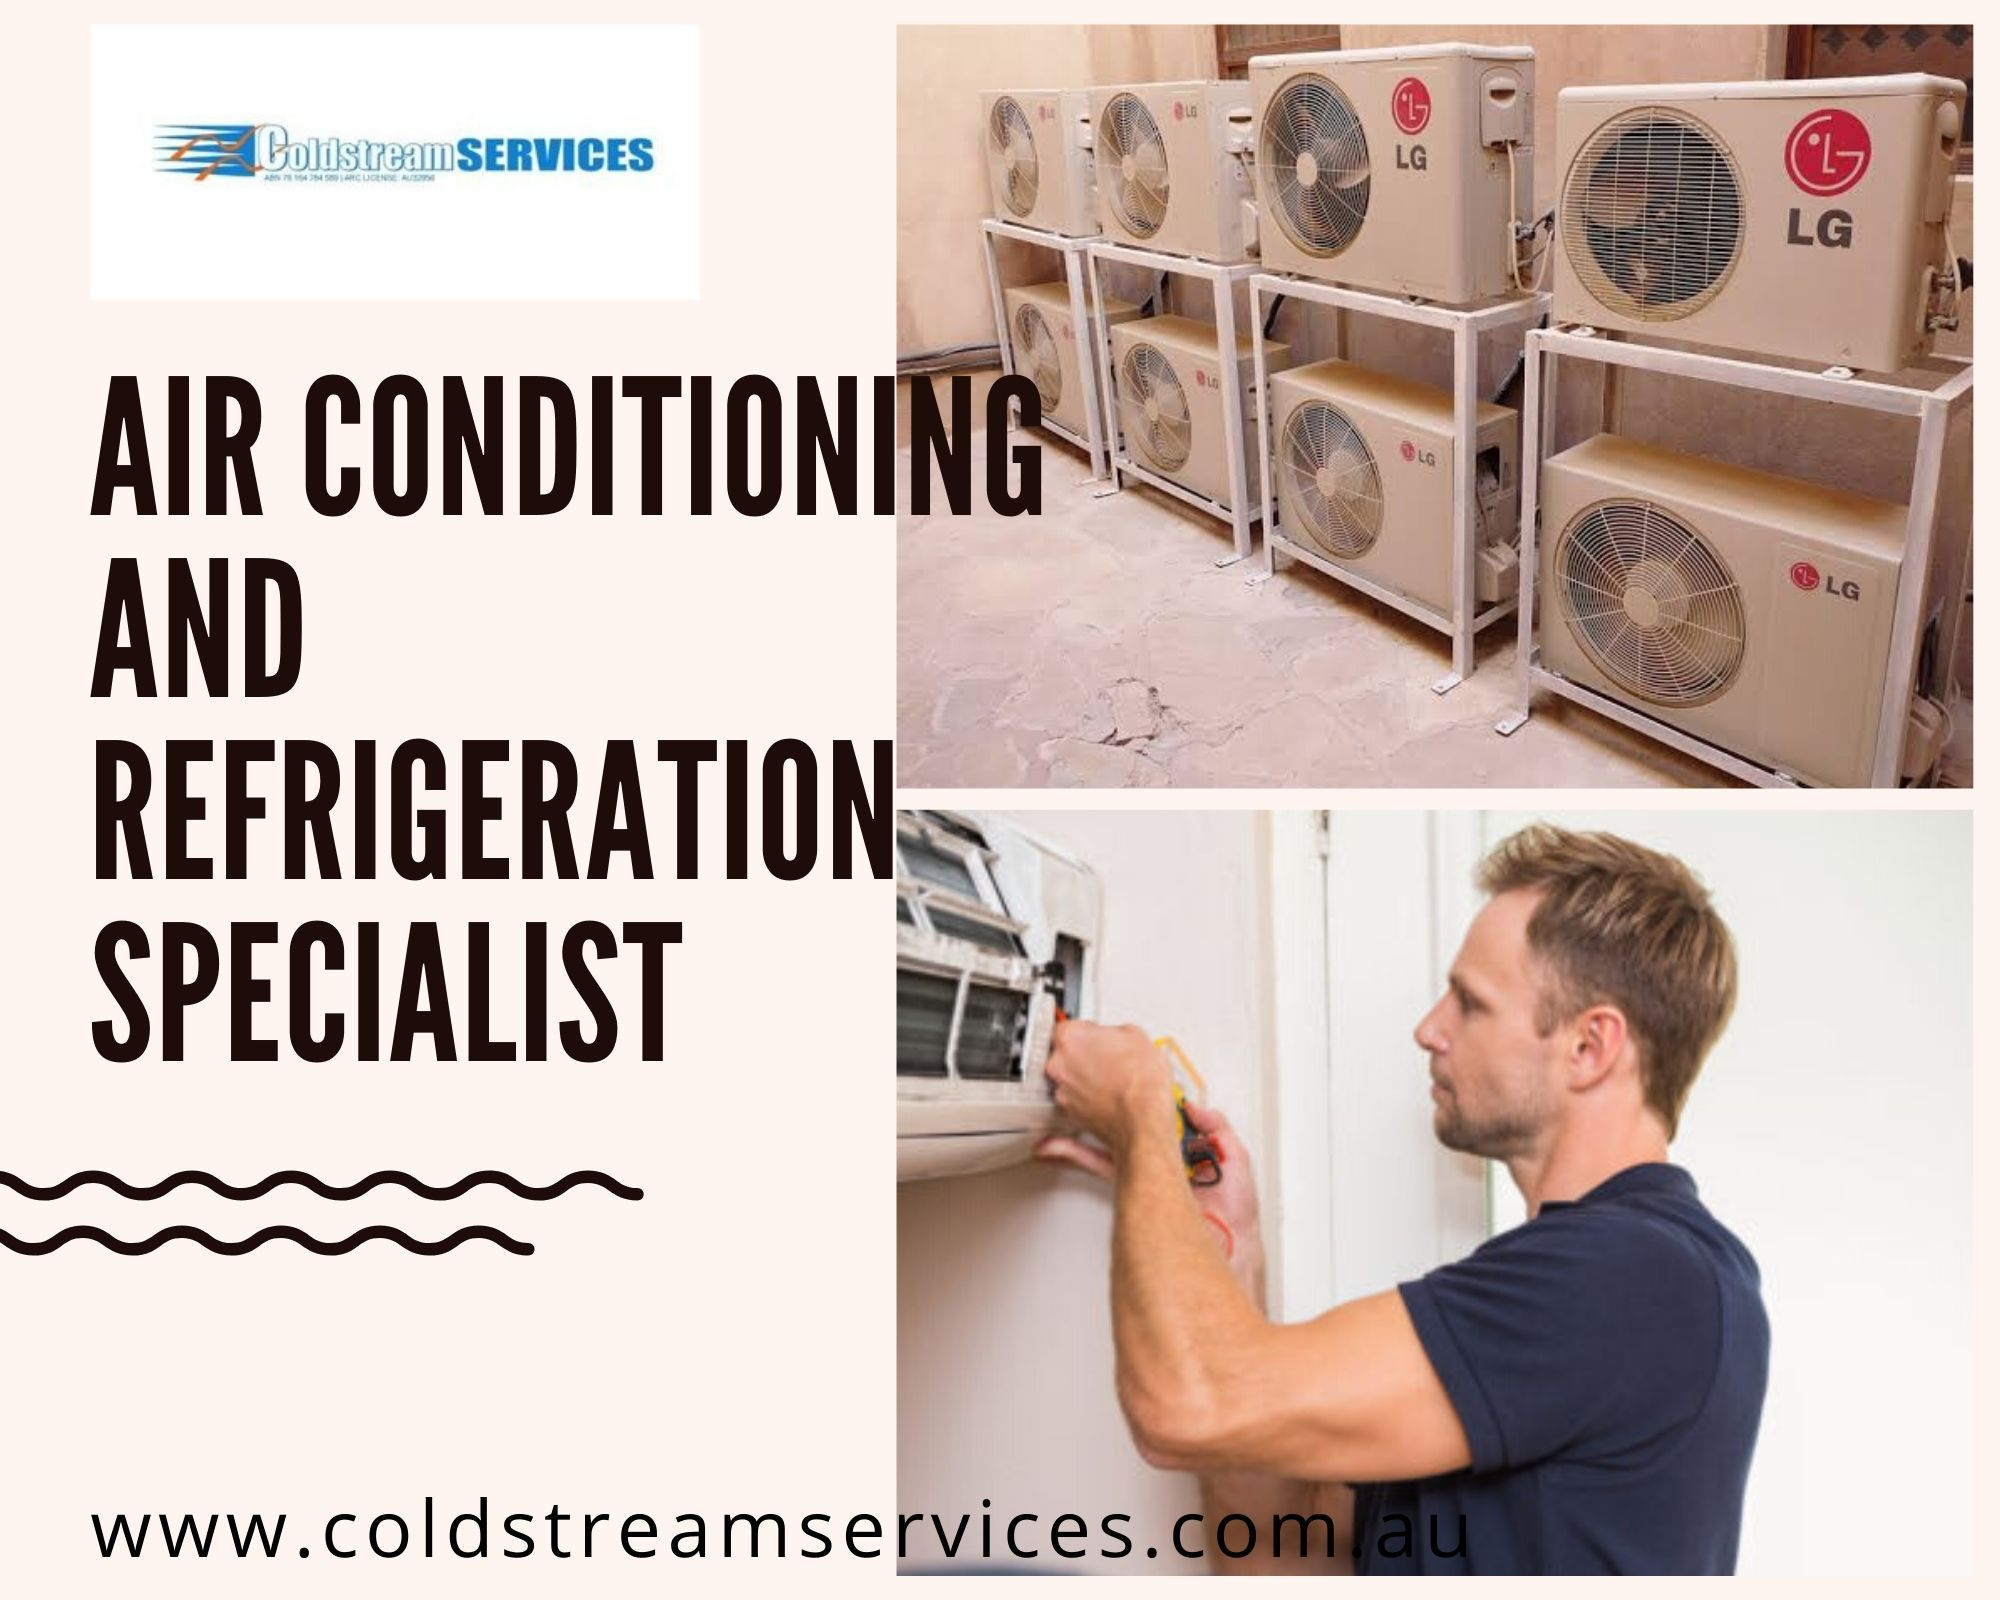 Cold Stream Services offers a range of top quality Air